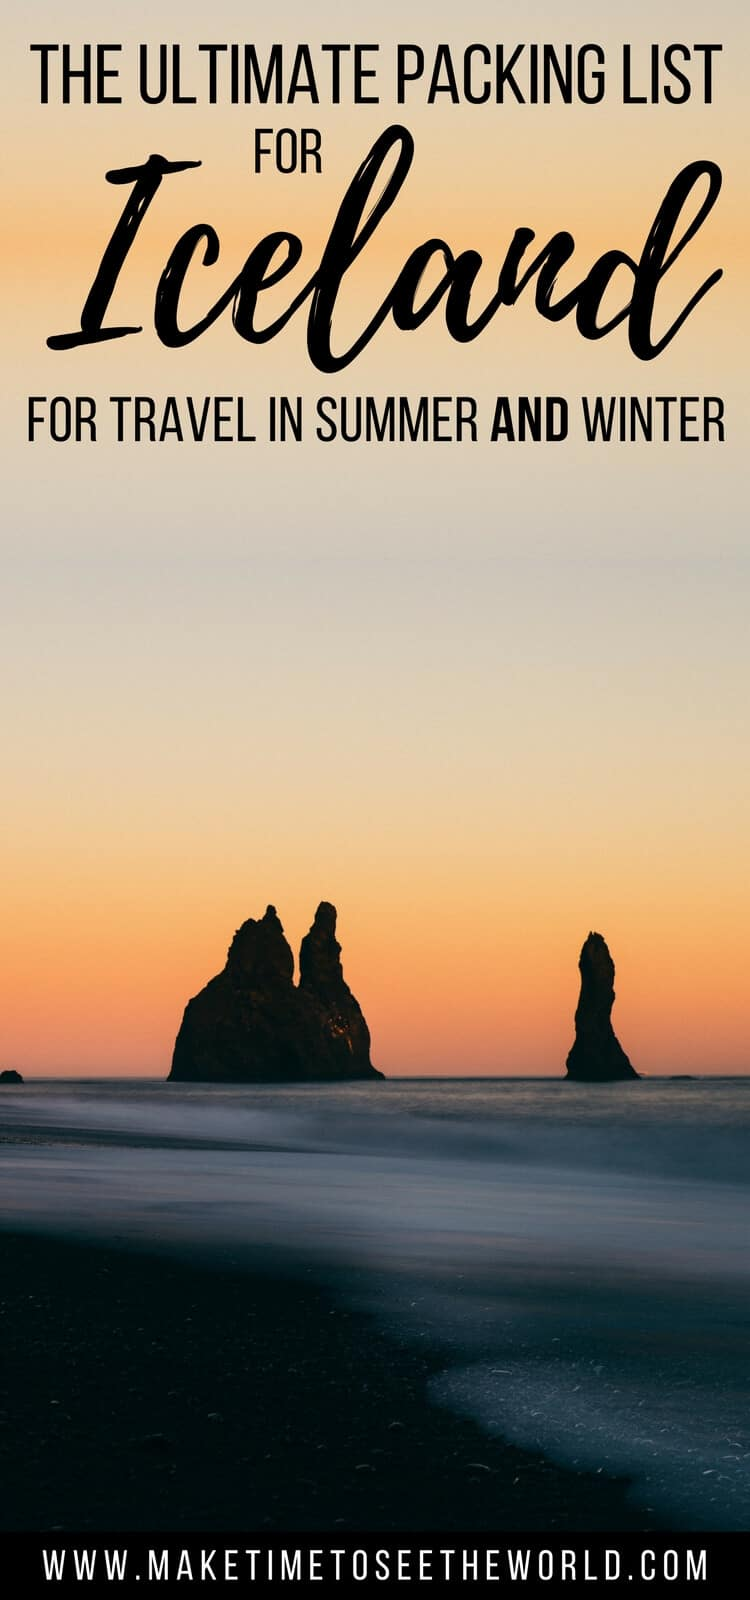 Pin Image for What to Pack for Iceland with the black salat rocks in the ocean with text overlay